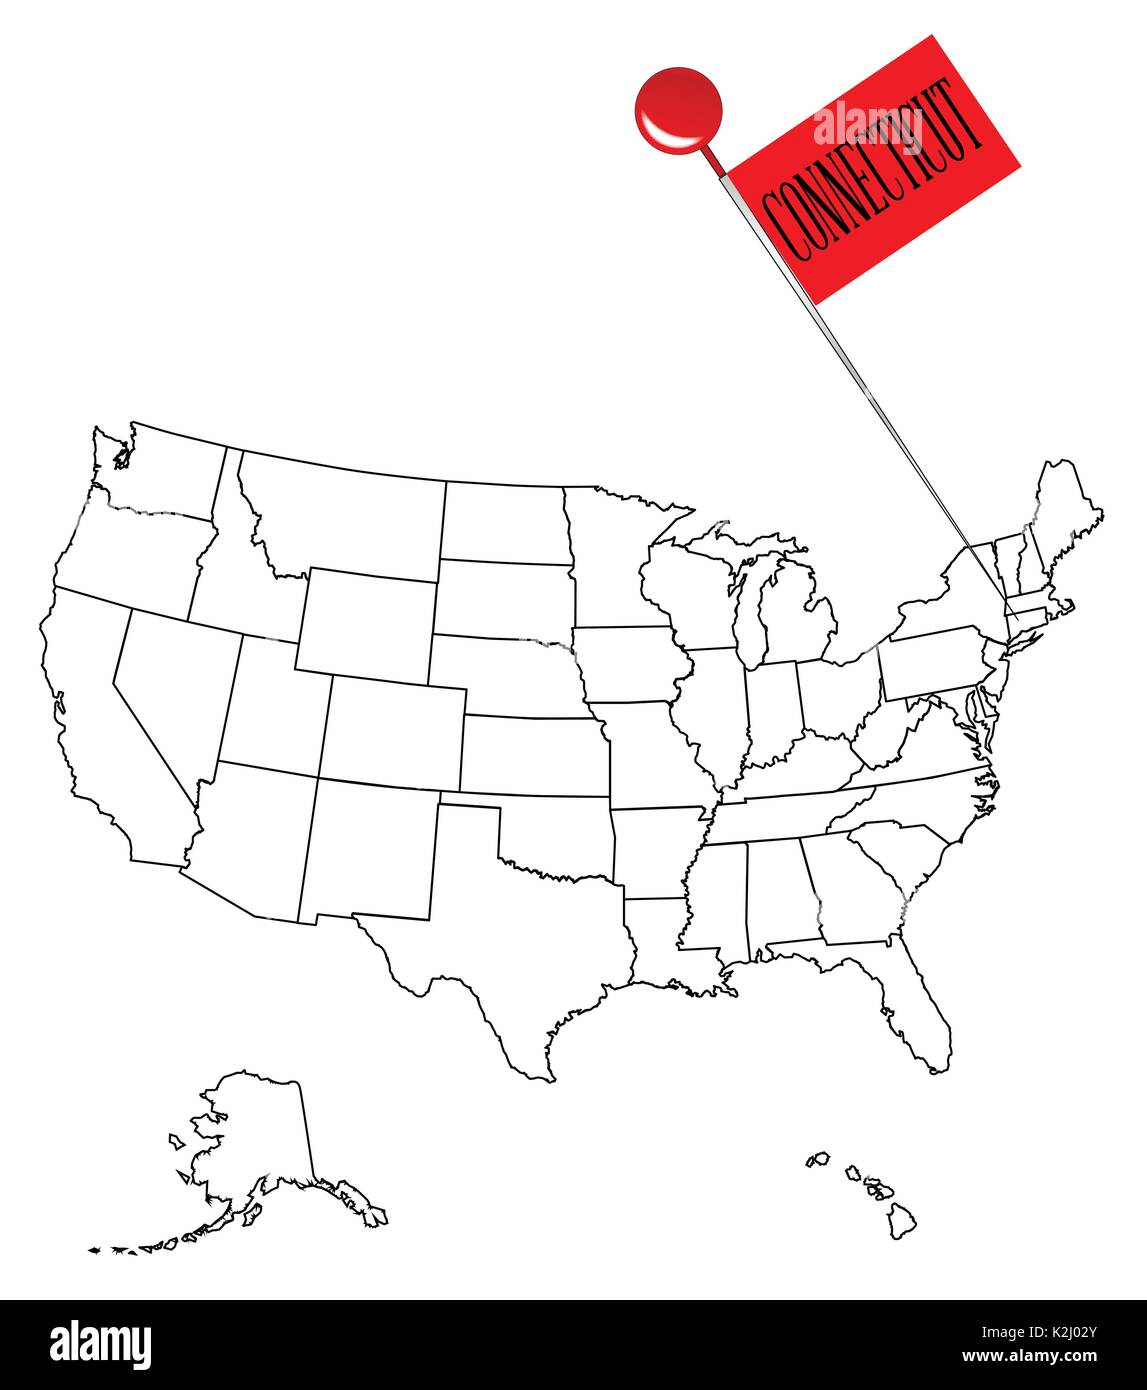 Ideas Map Of Usa With Connecticut On Emergingartspdxcom - Map of usa connecticut